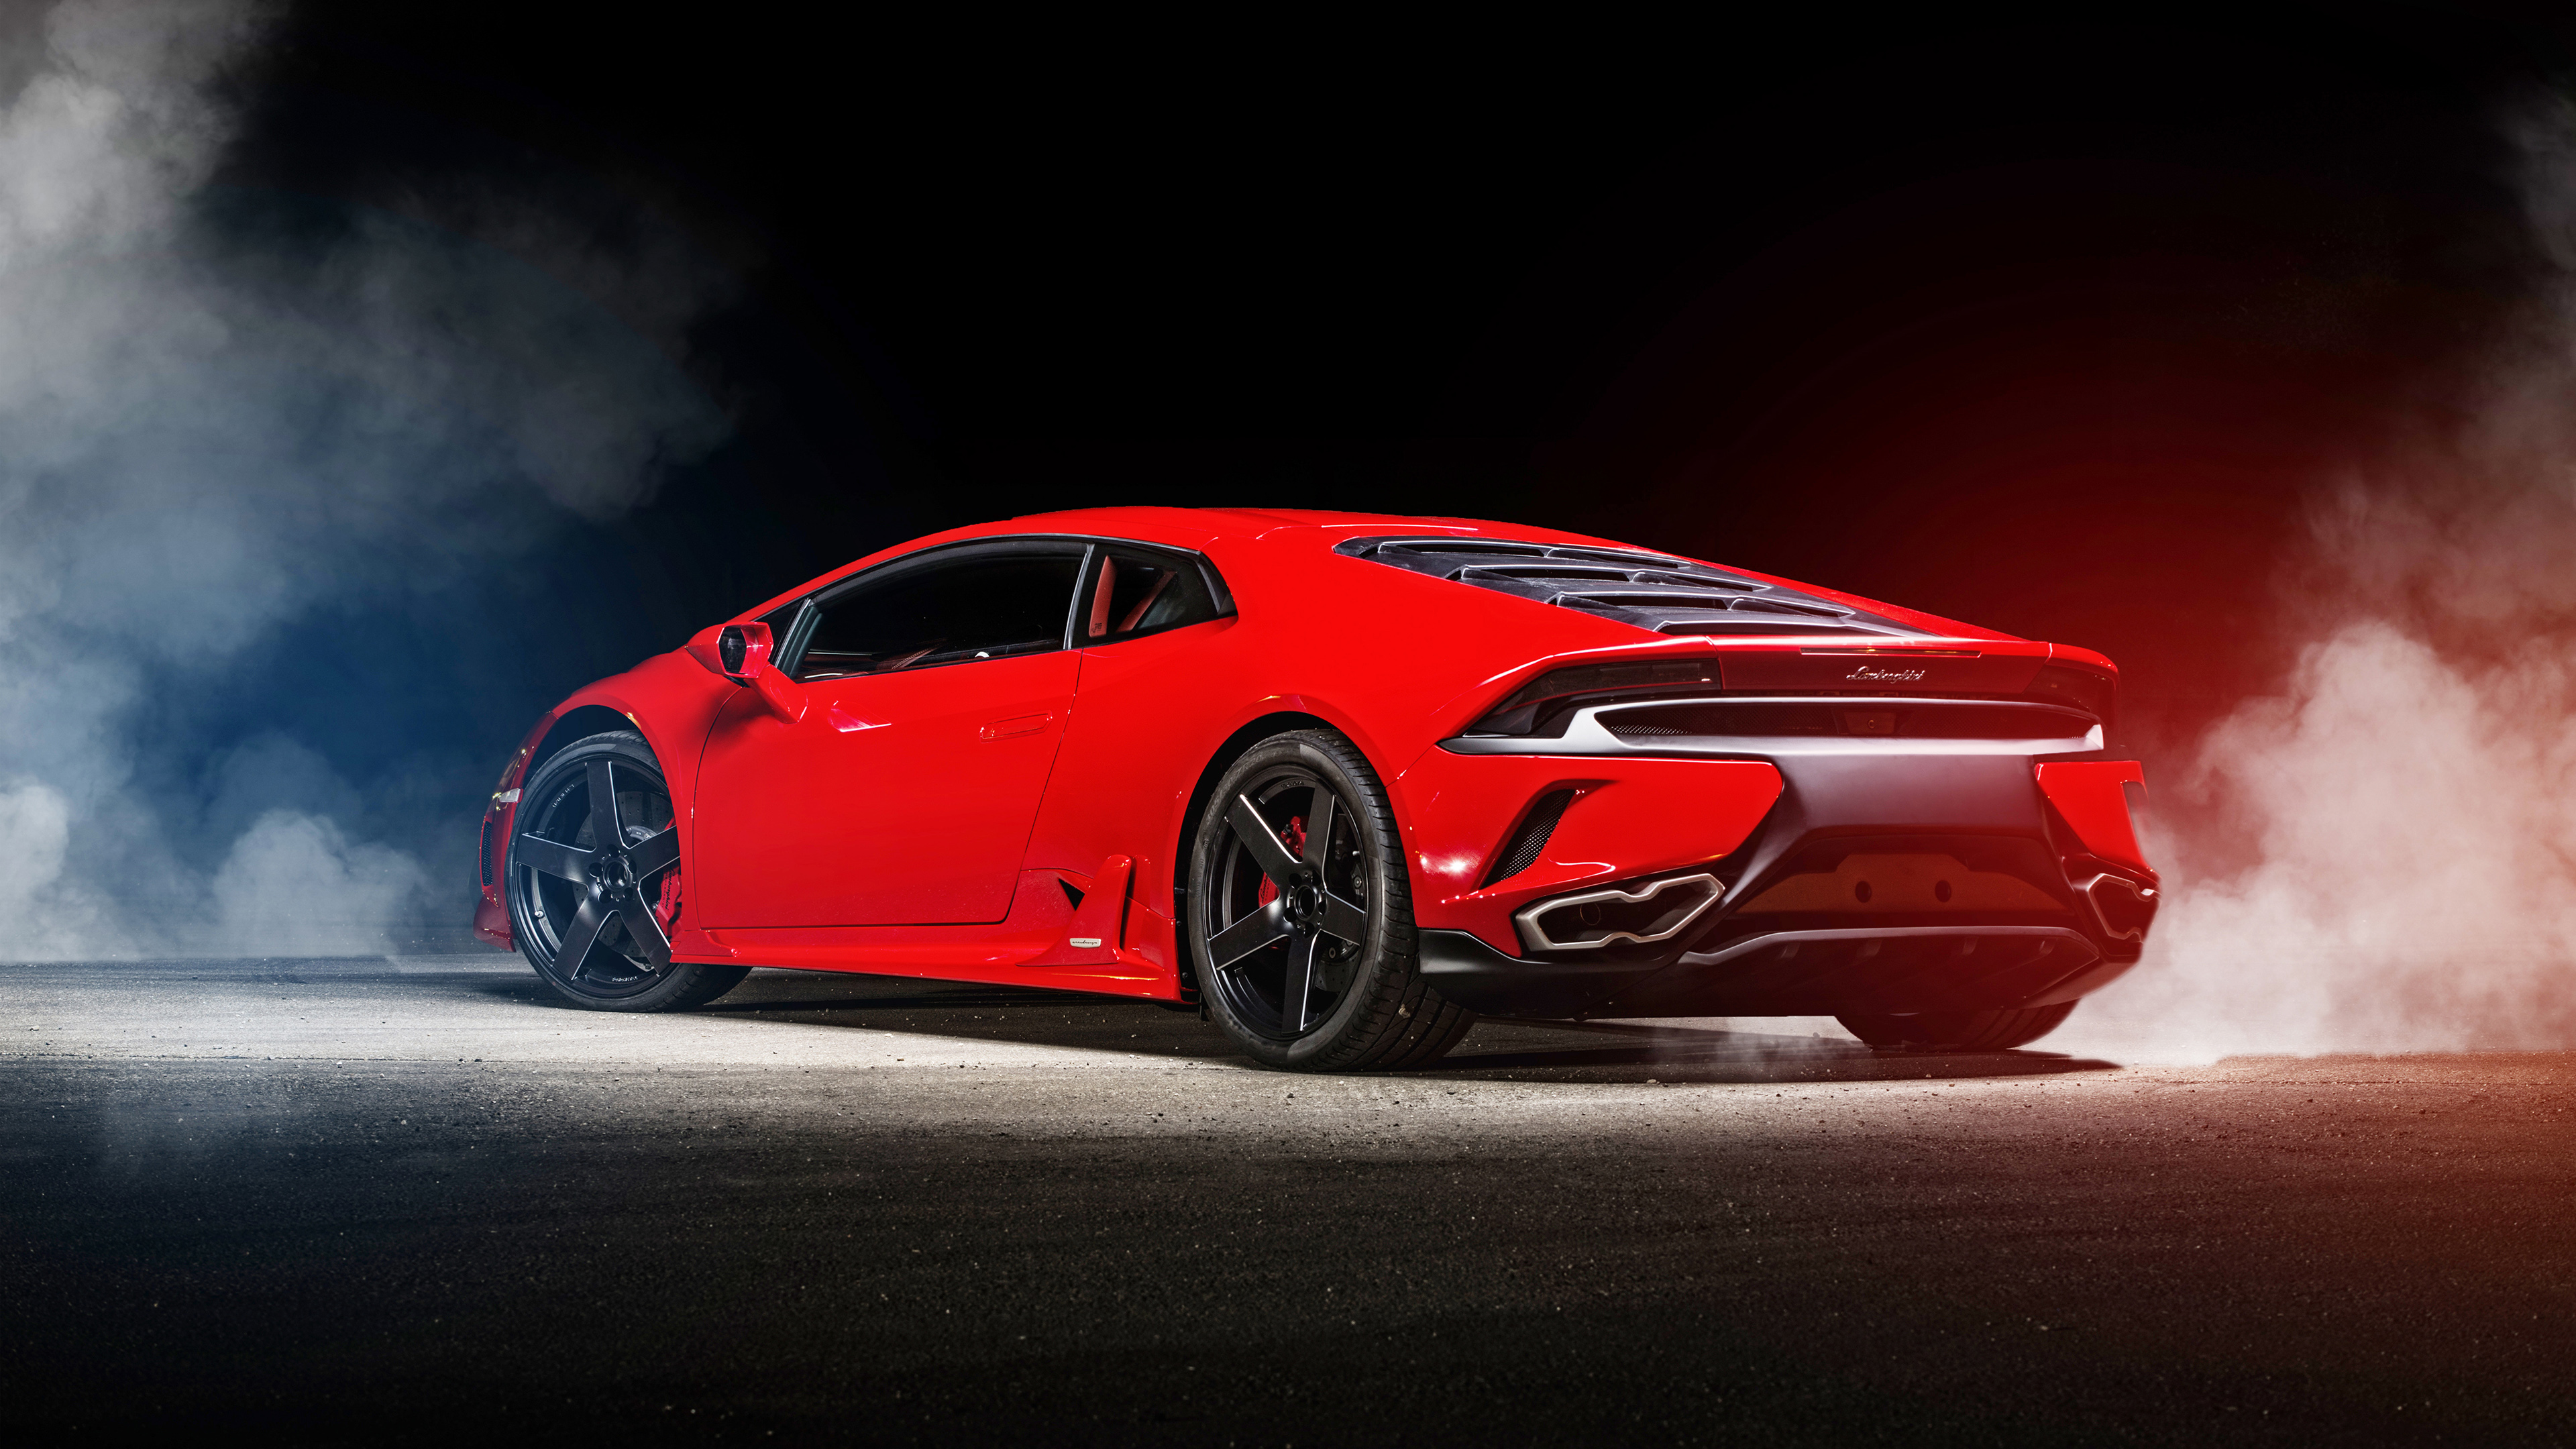 2015 Ares Design Lamborghini Huracan 4 Wallpaper  HD Car Wallpapers